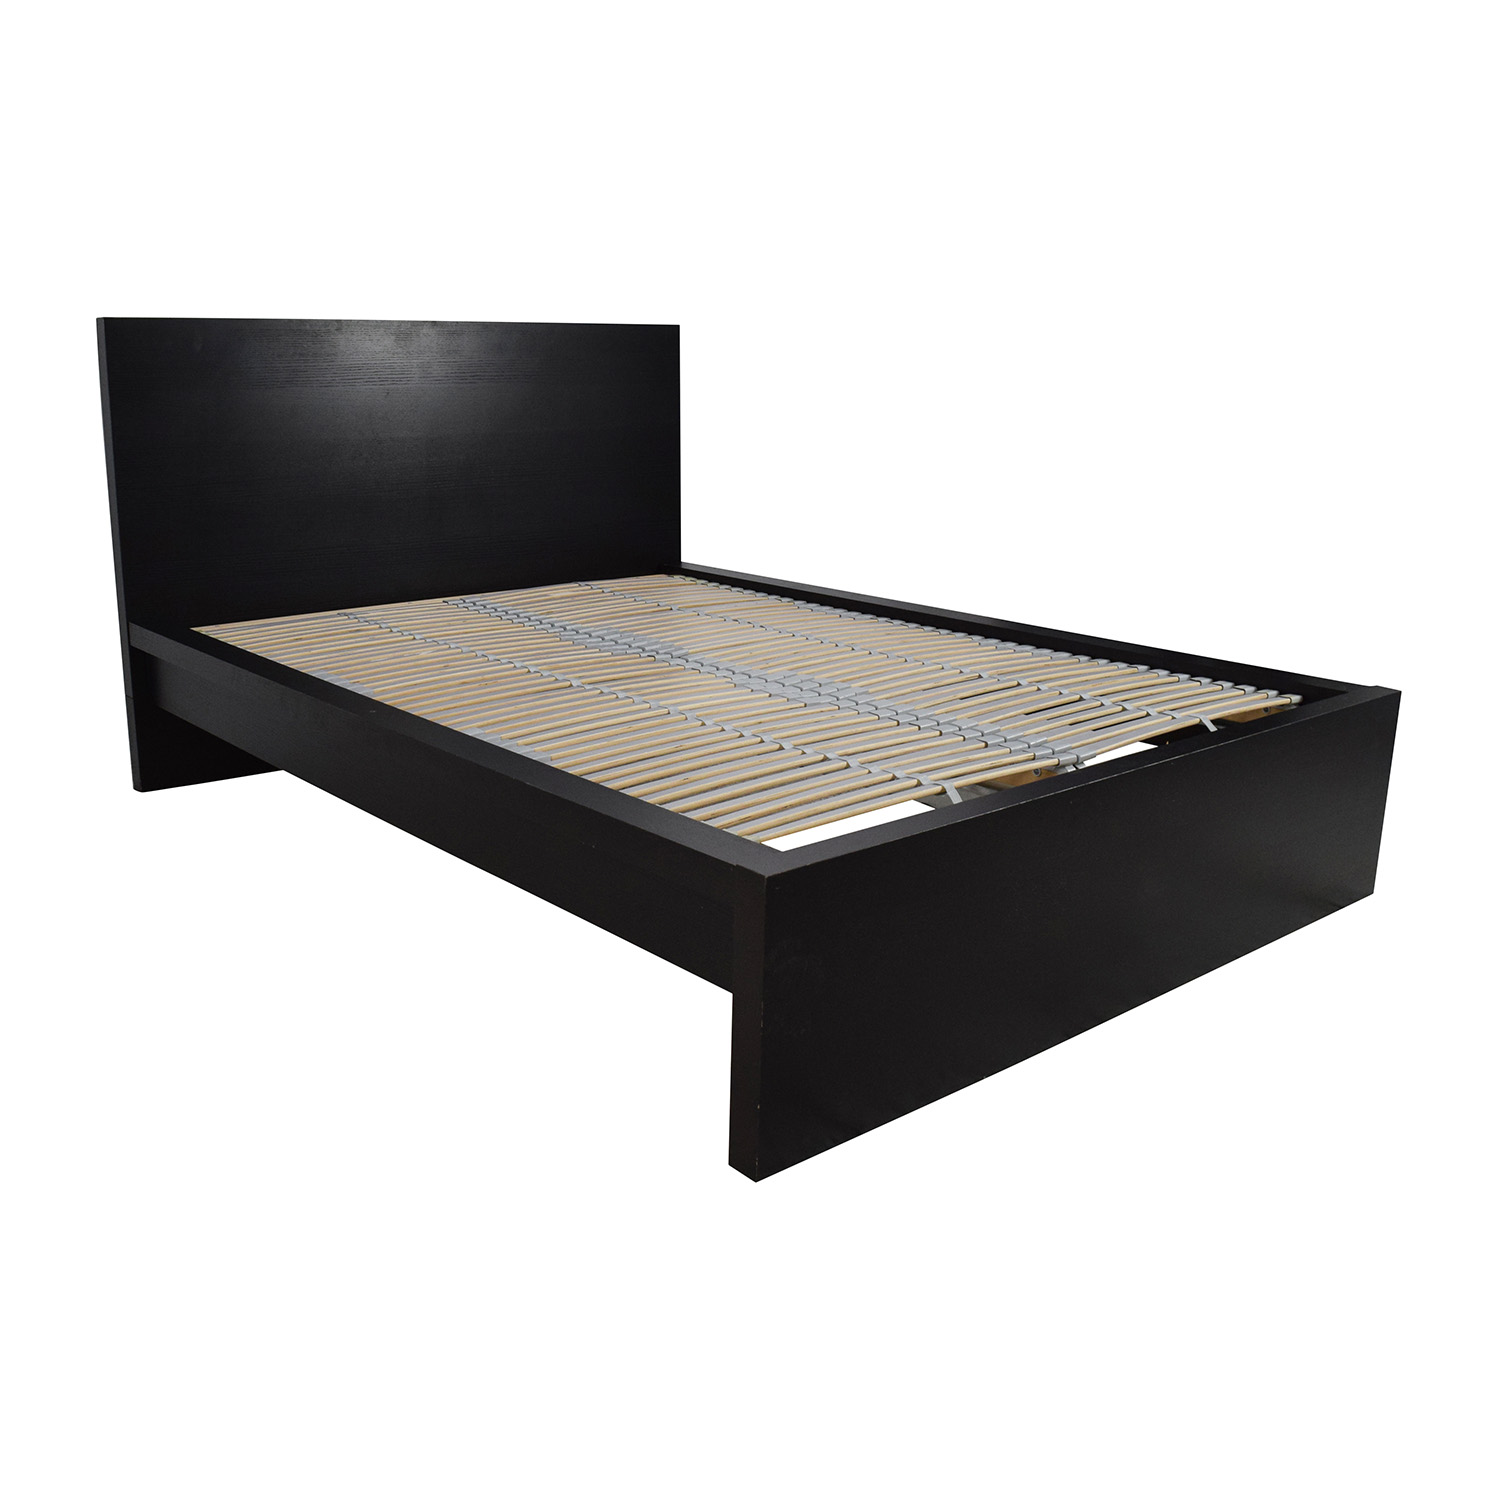 King Single Bed Ikea Fresh Ikea Bed Frame Squeak Insured By Ross